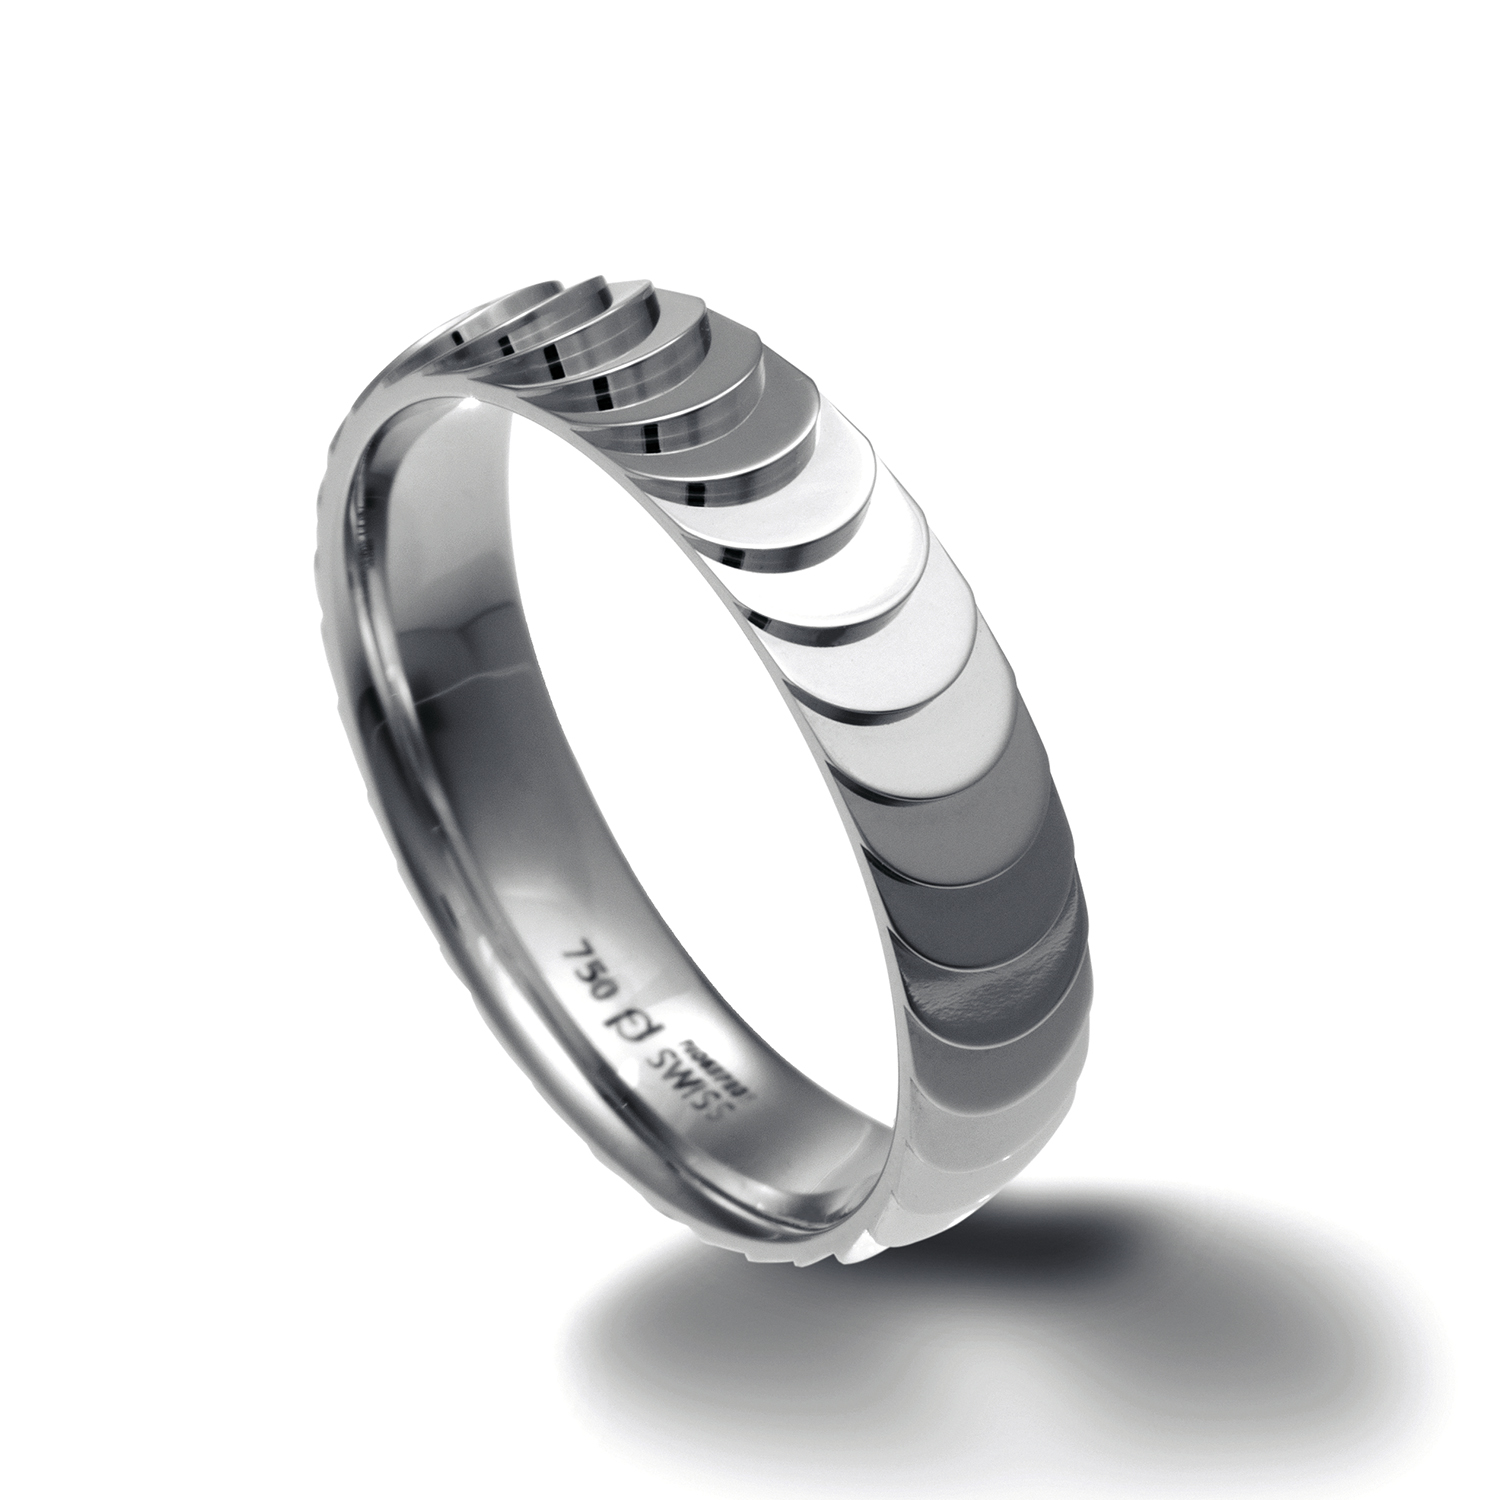 Gent's rings, wedding bands, wedding rings, gold, platinum, palladium, jewelry, jewellery